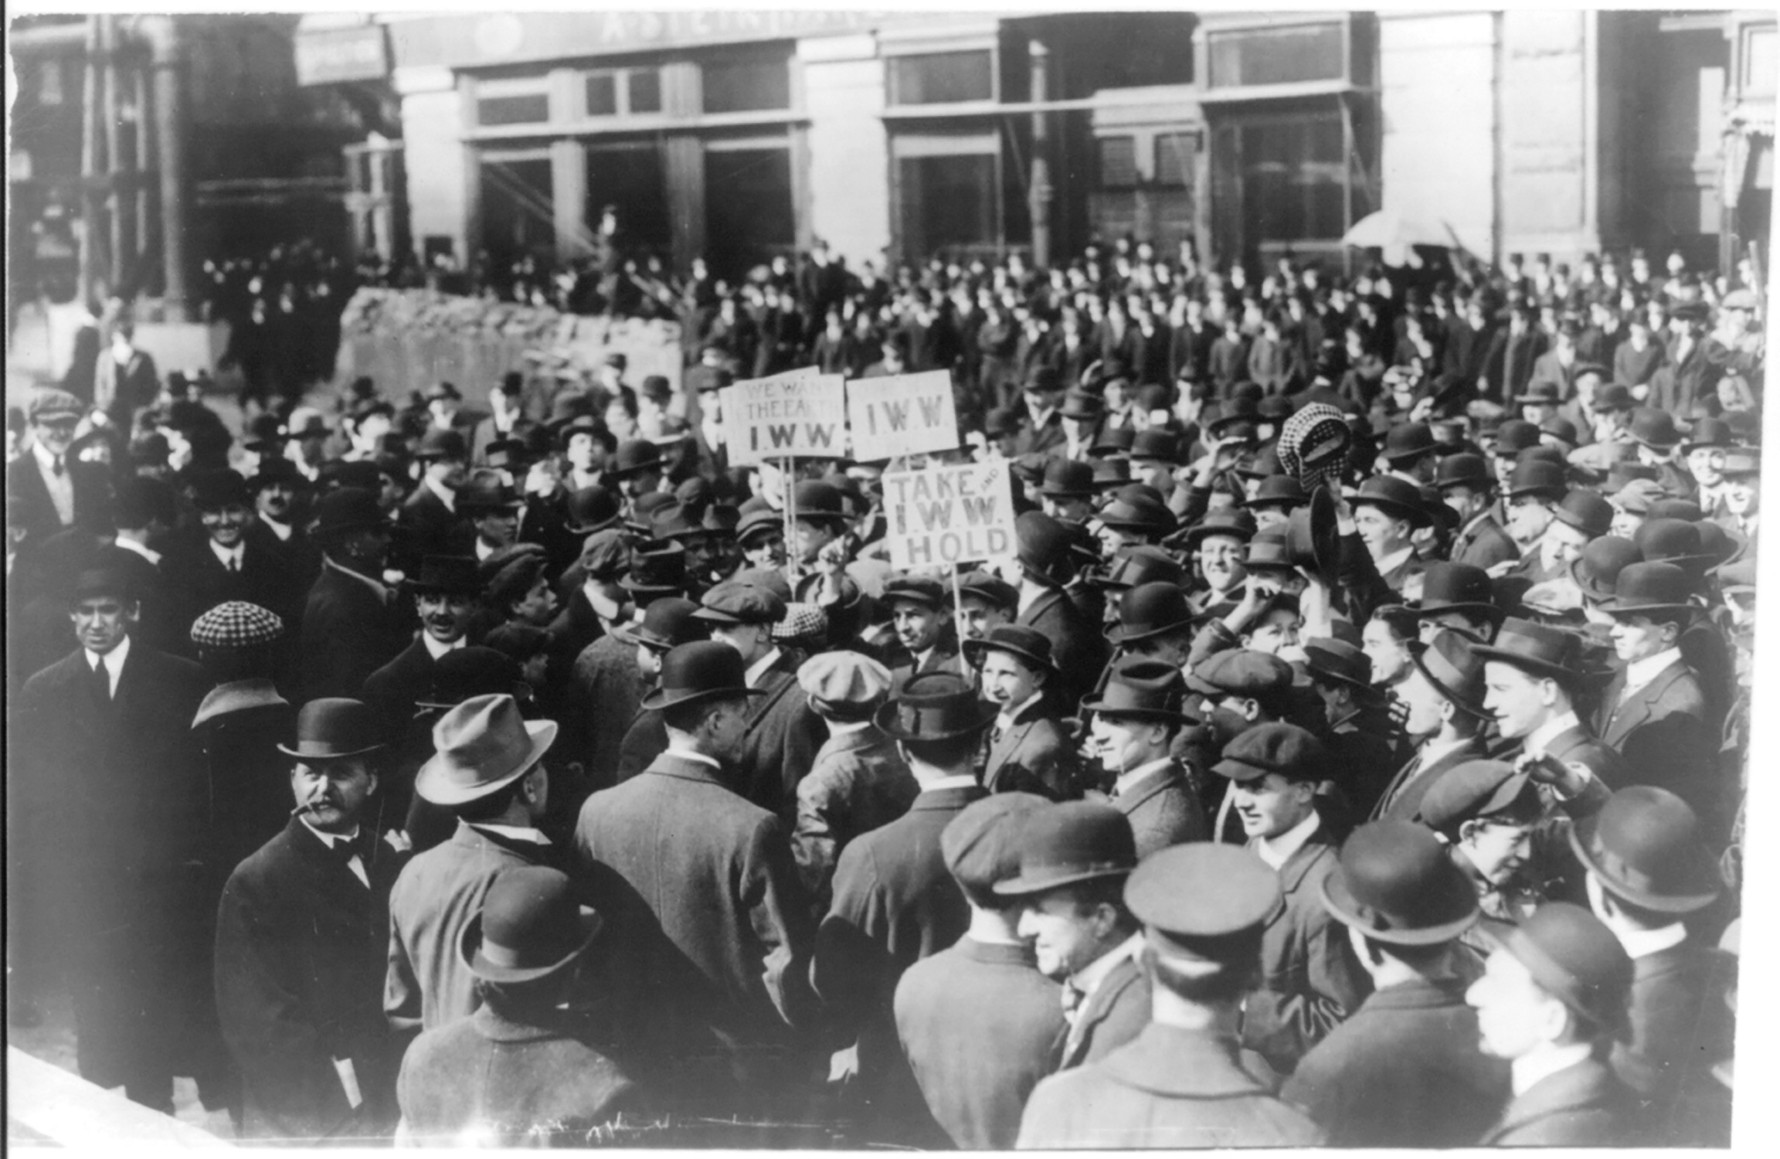 A black-and-white photo of an Industrial Workers of the World demonstration